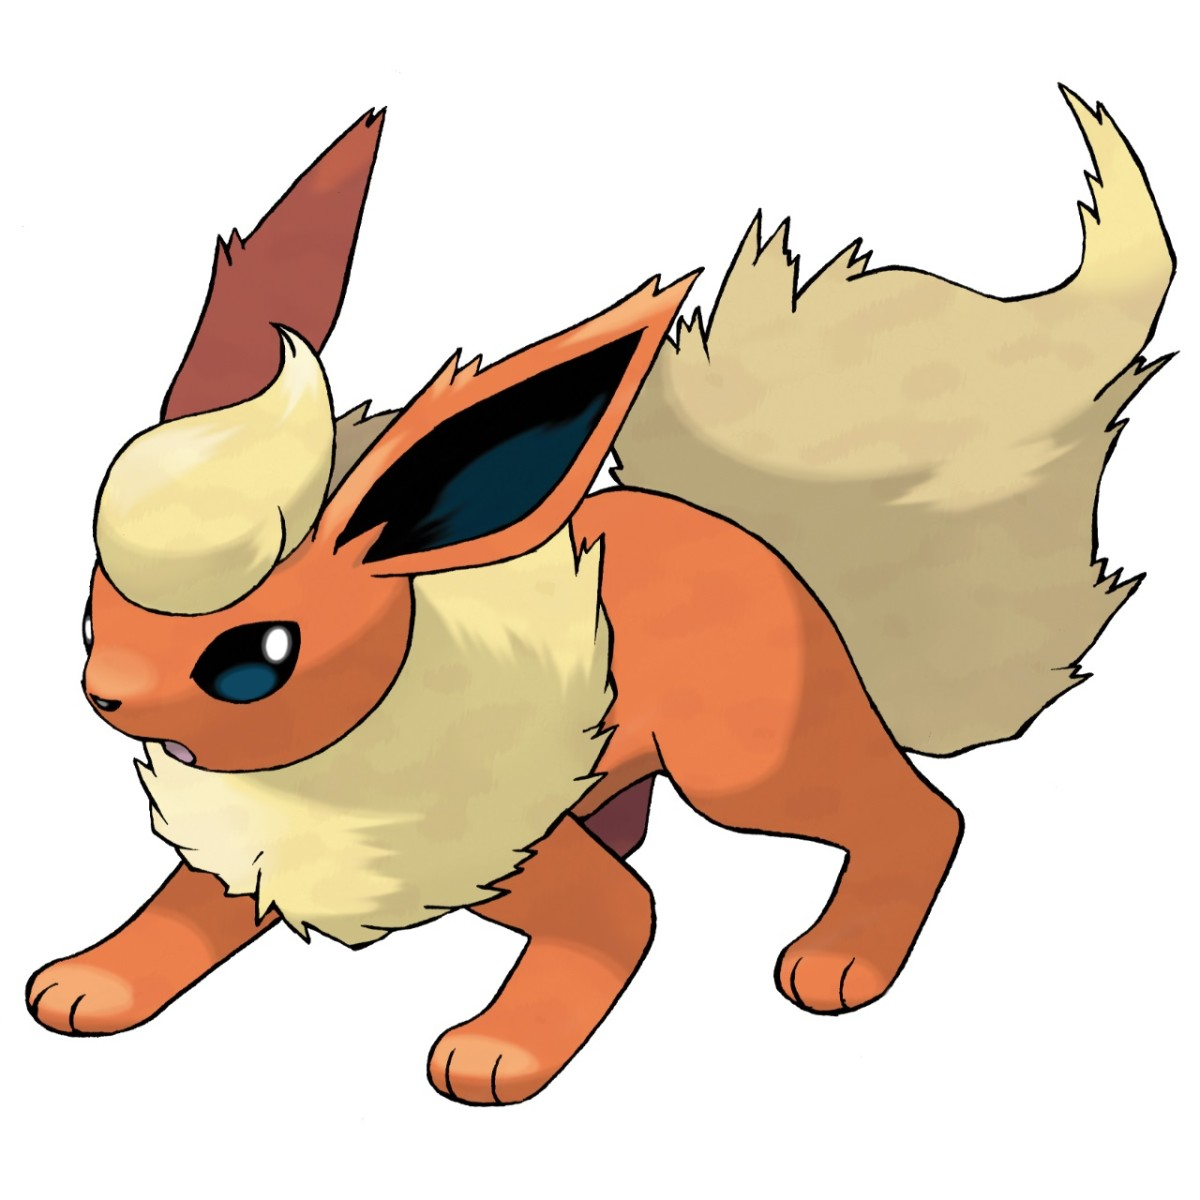 Flareon is eevee's fire-type evolutionary form.